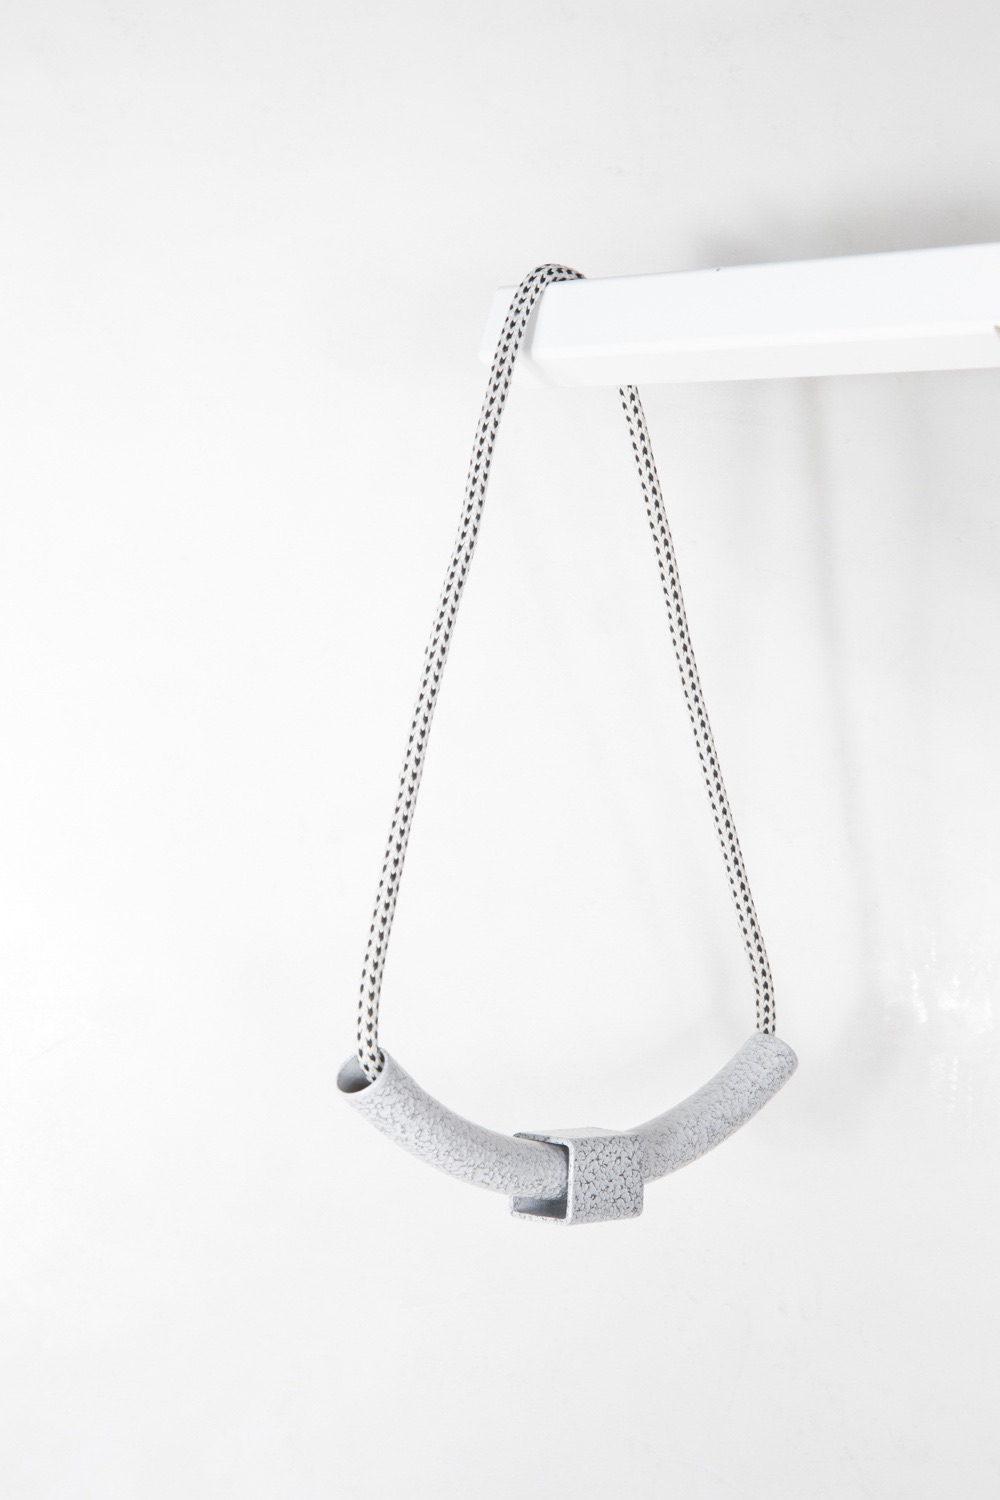 HT Necklace.jpg